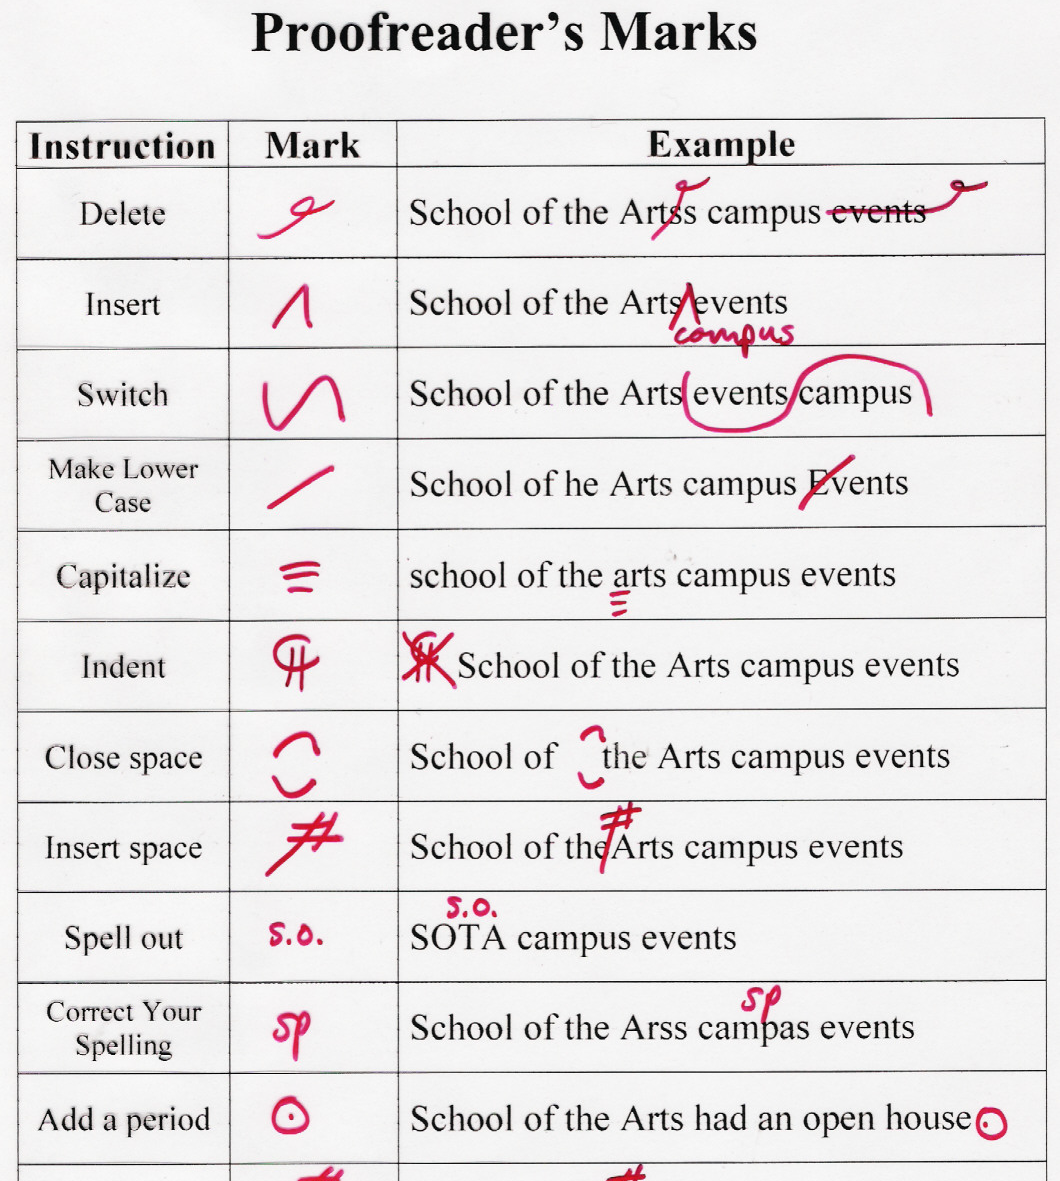 Proofreadding Marks Picpng Proofreadding Marks Pic Essay Corrections